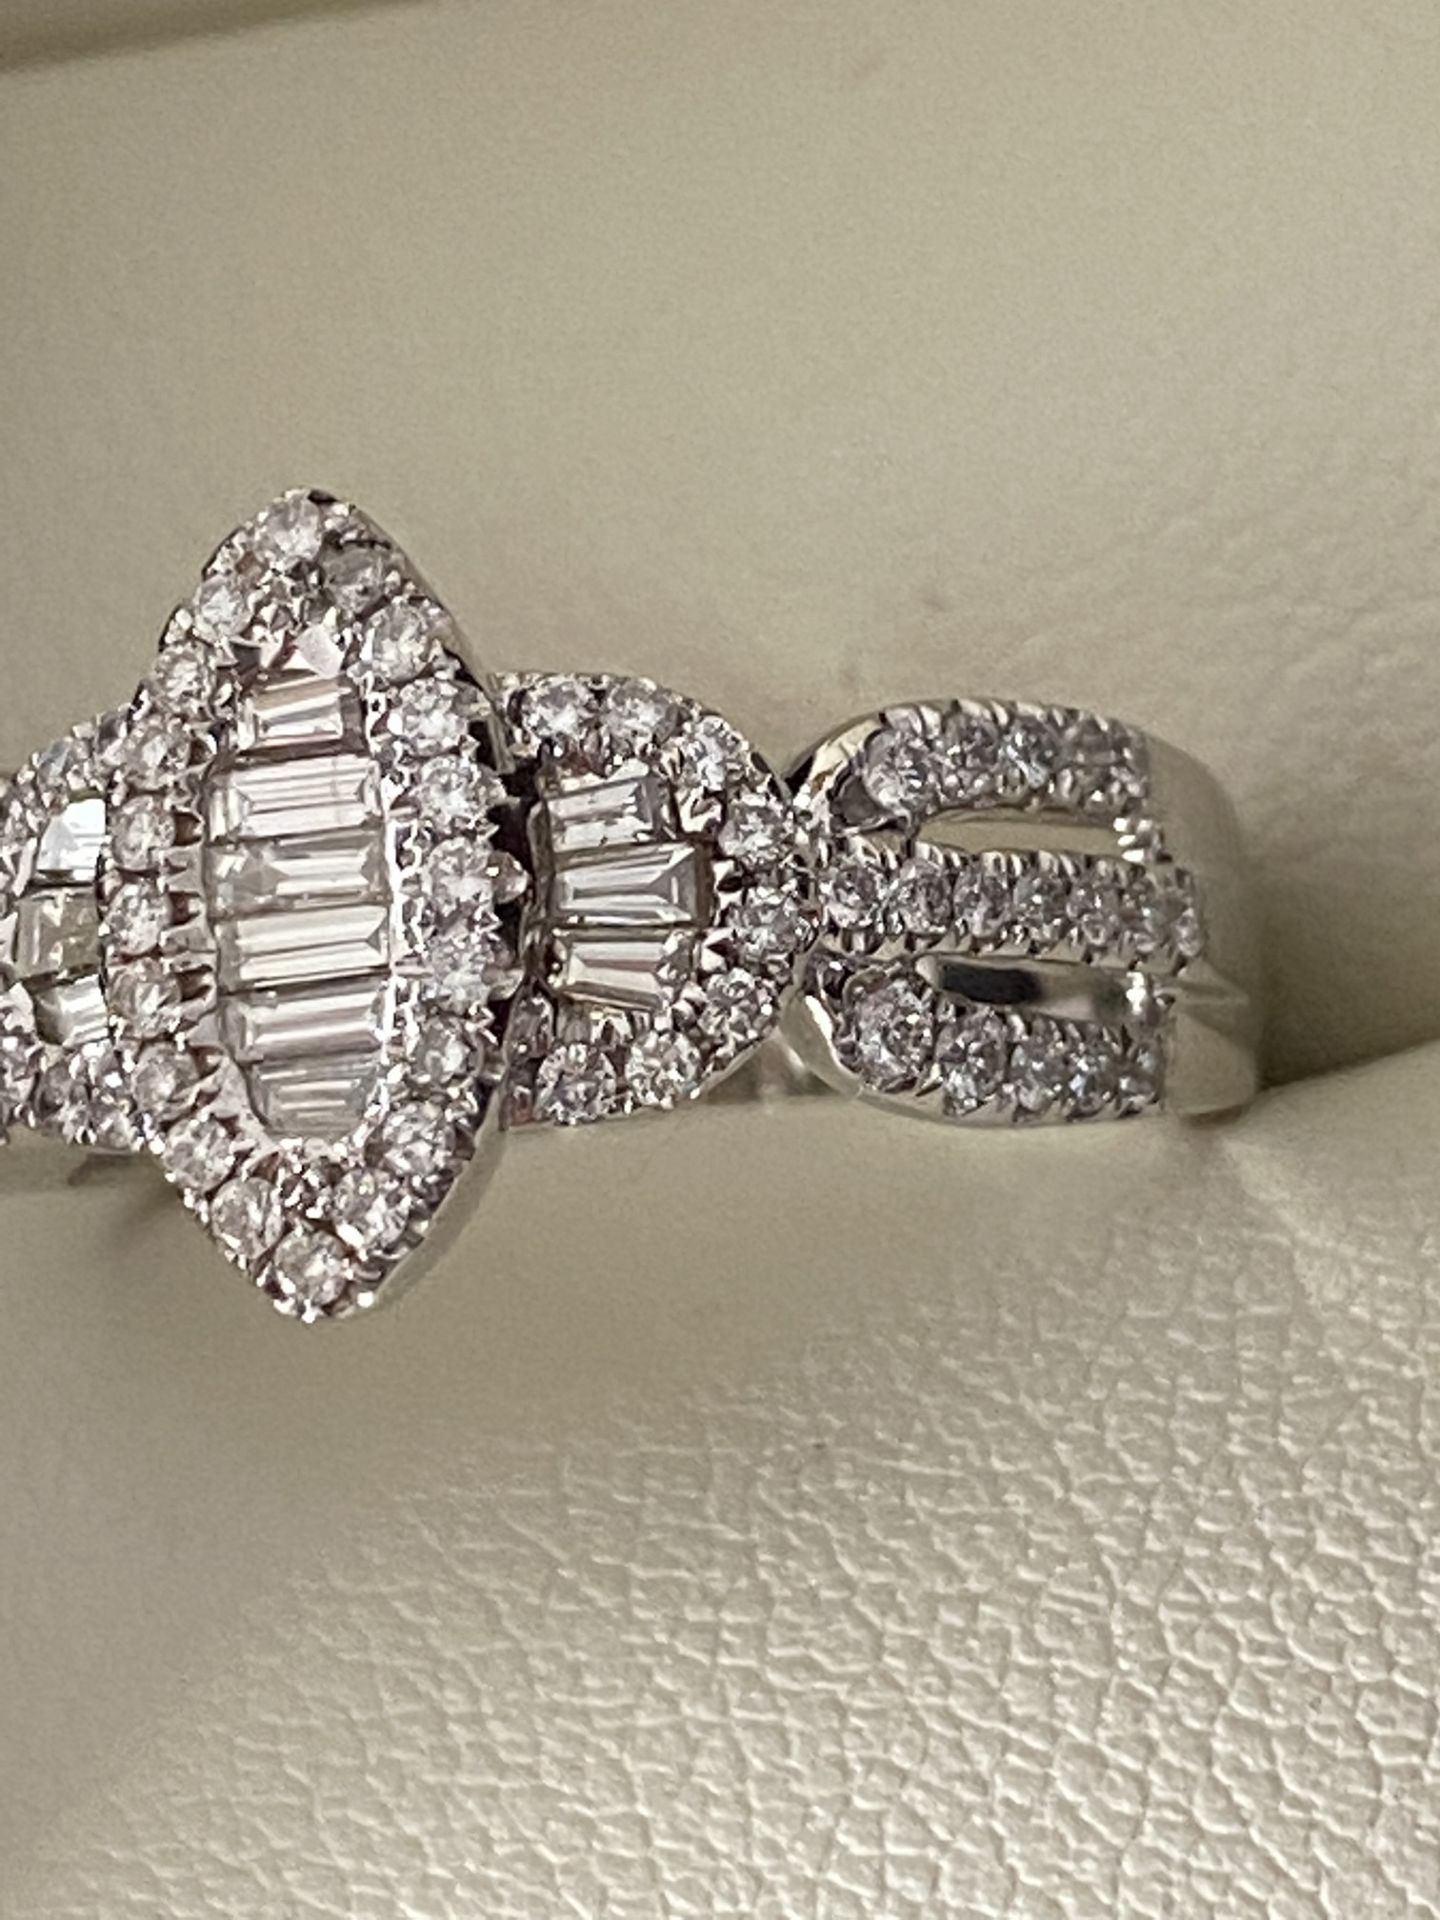 0.69ct DIAMOND MARQUISE SHAPED RING SET IN WHITE GOLD - Image 5 of 6